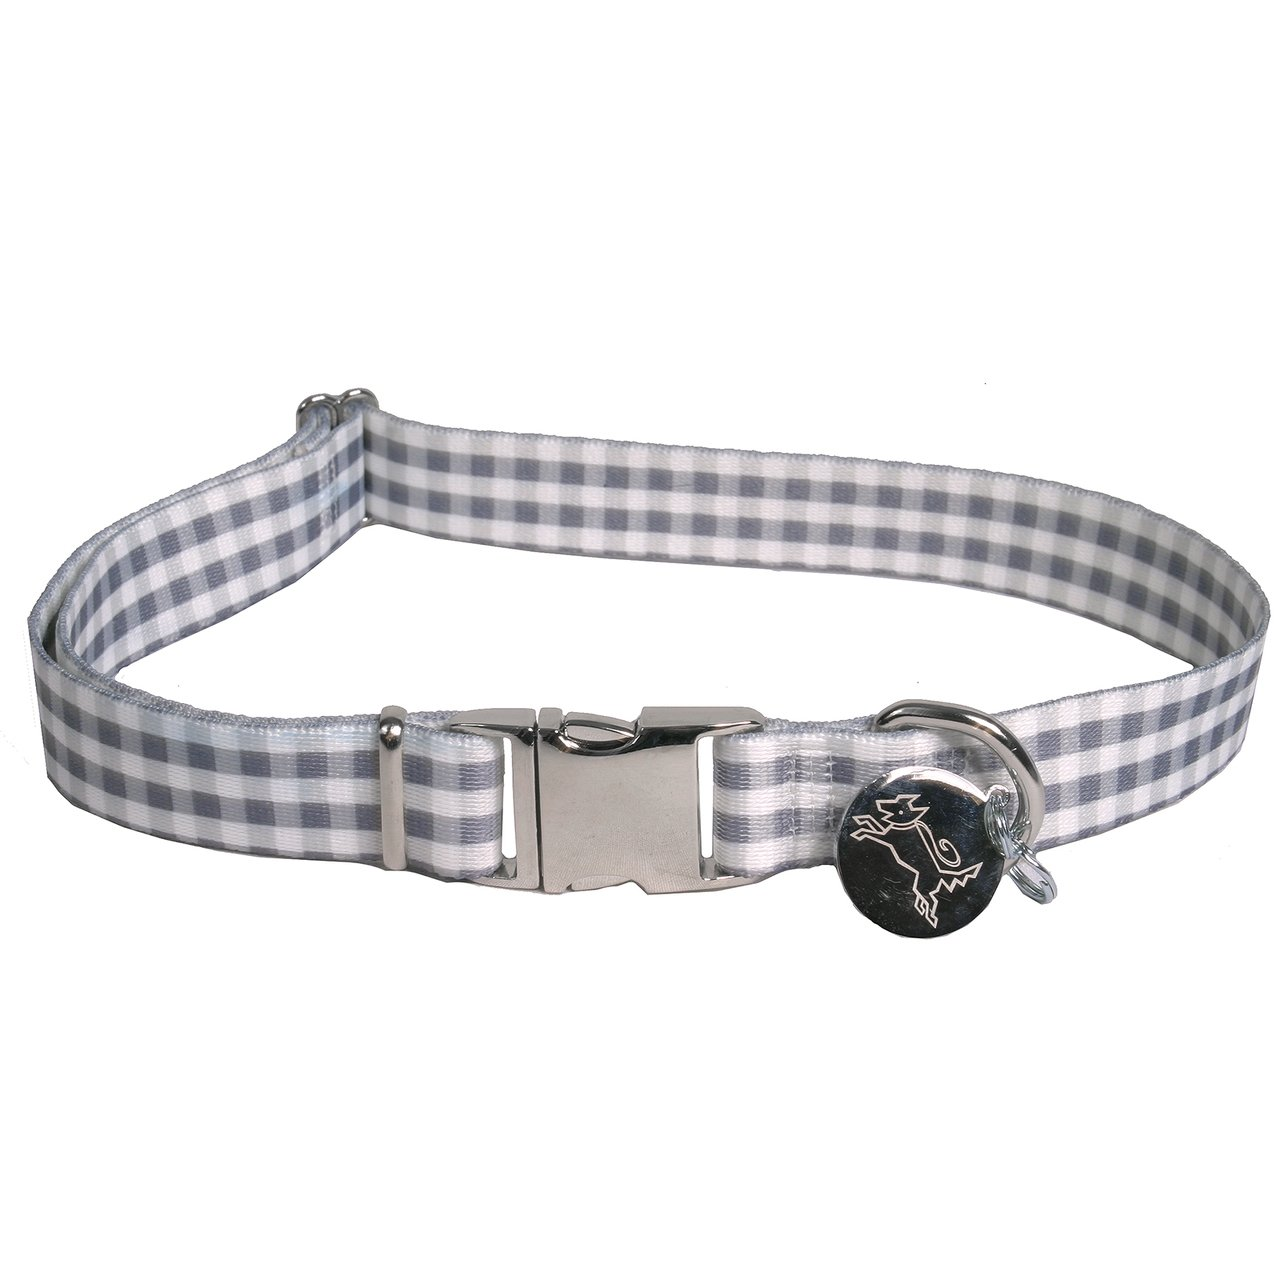 Southern Dawg Gingham Gray Dog Collar -Medium-3/4'' Neck 14 to 20'' Made in the USA by Yellow Dog Design